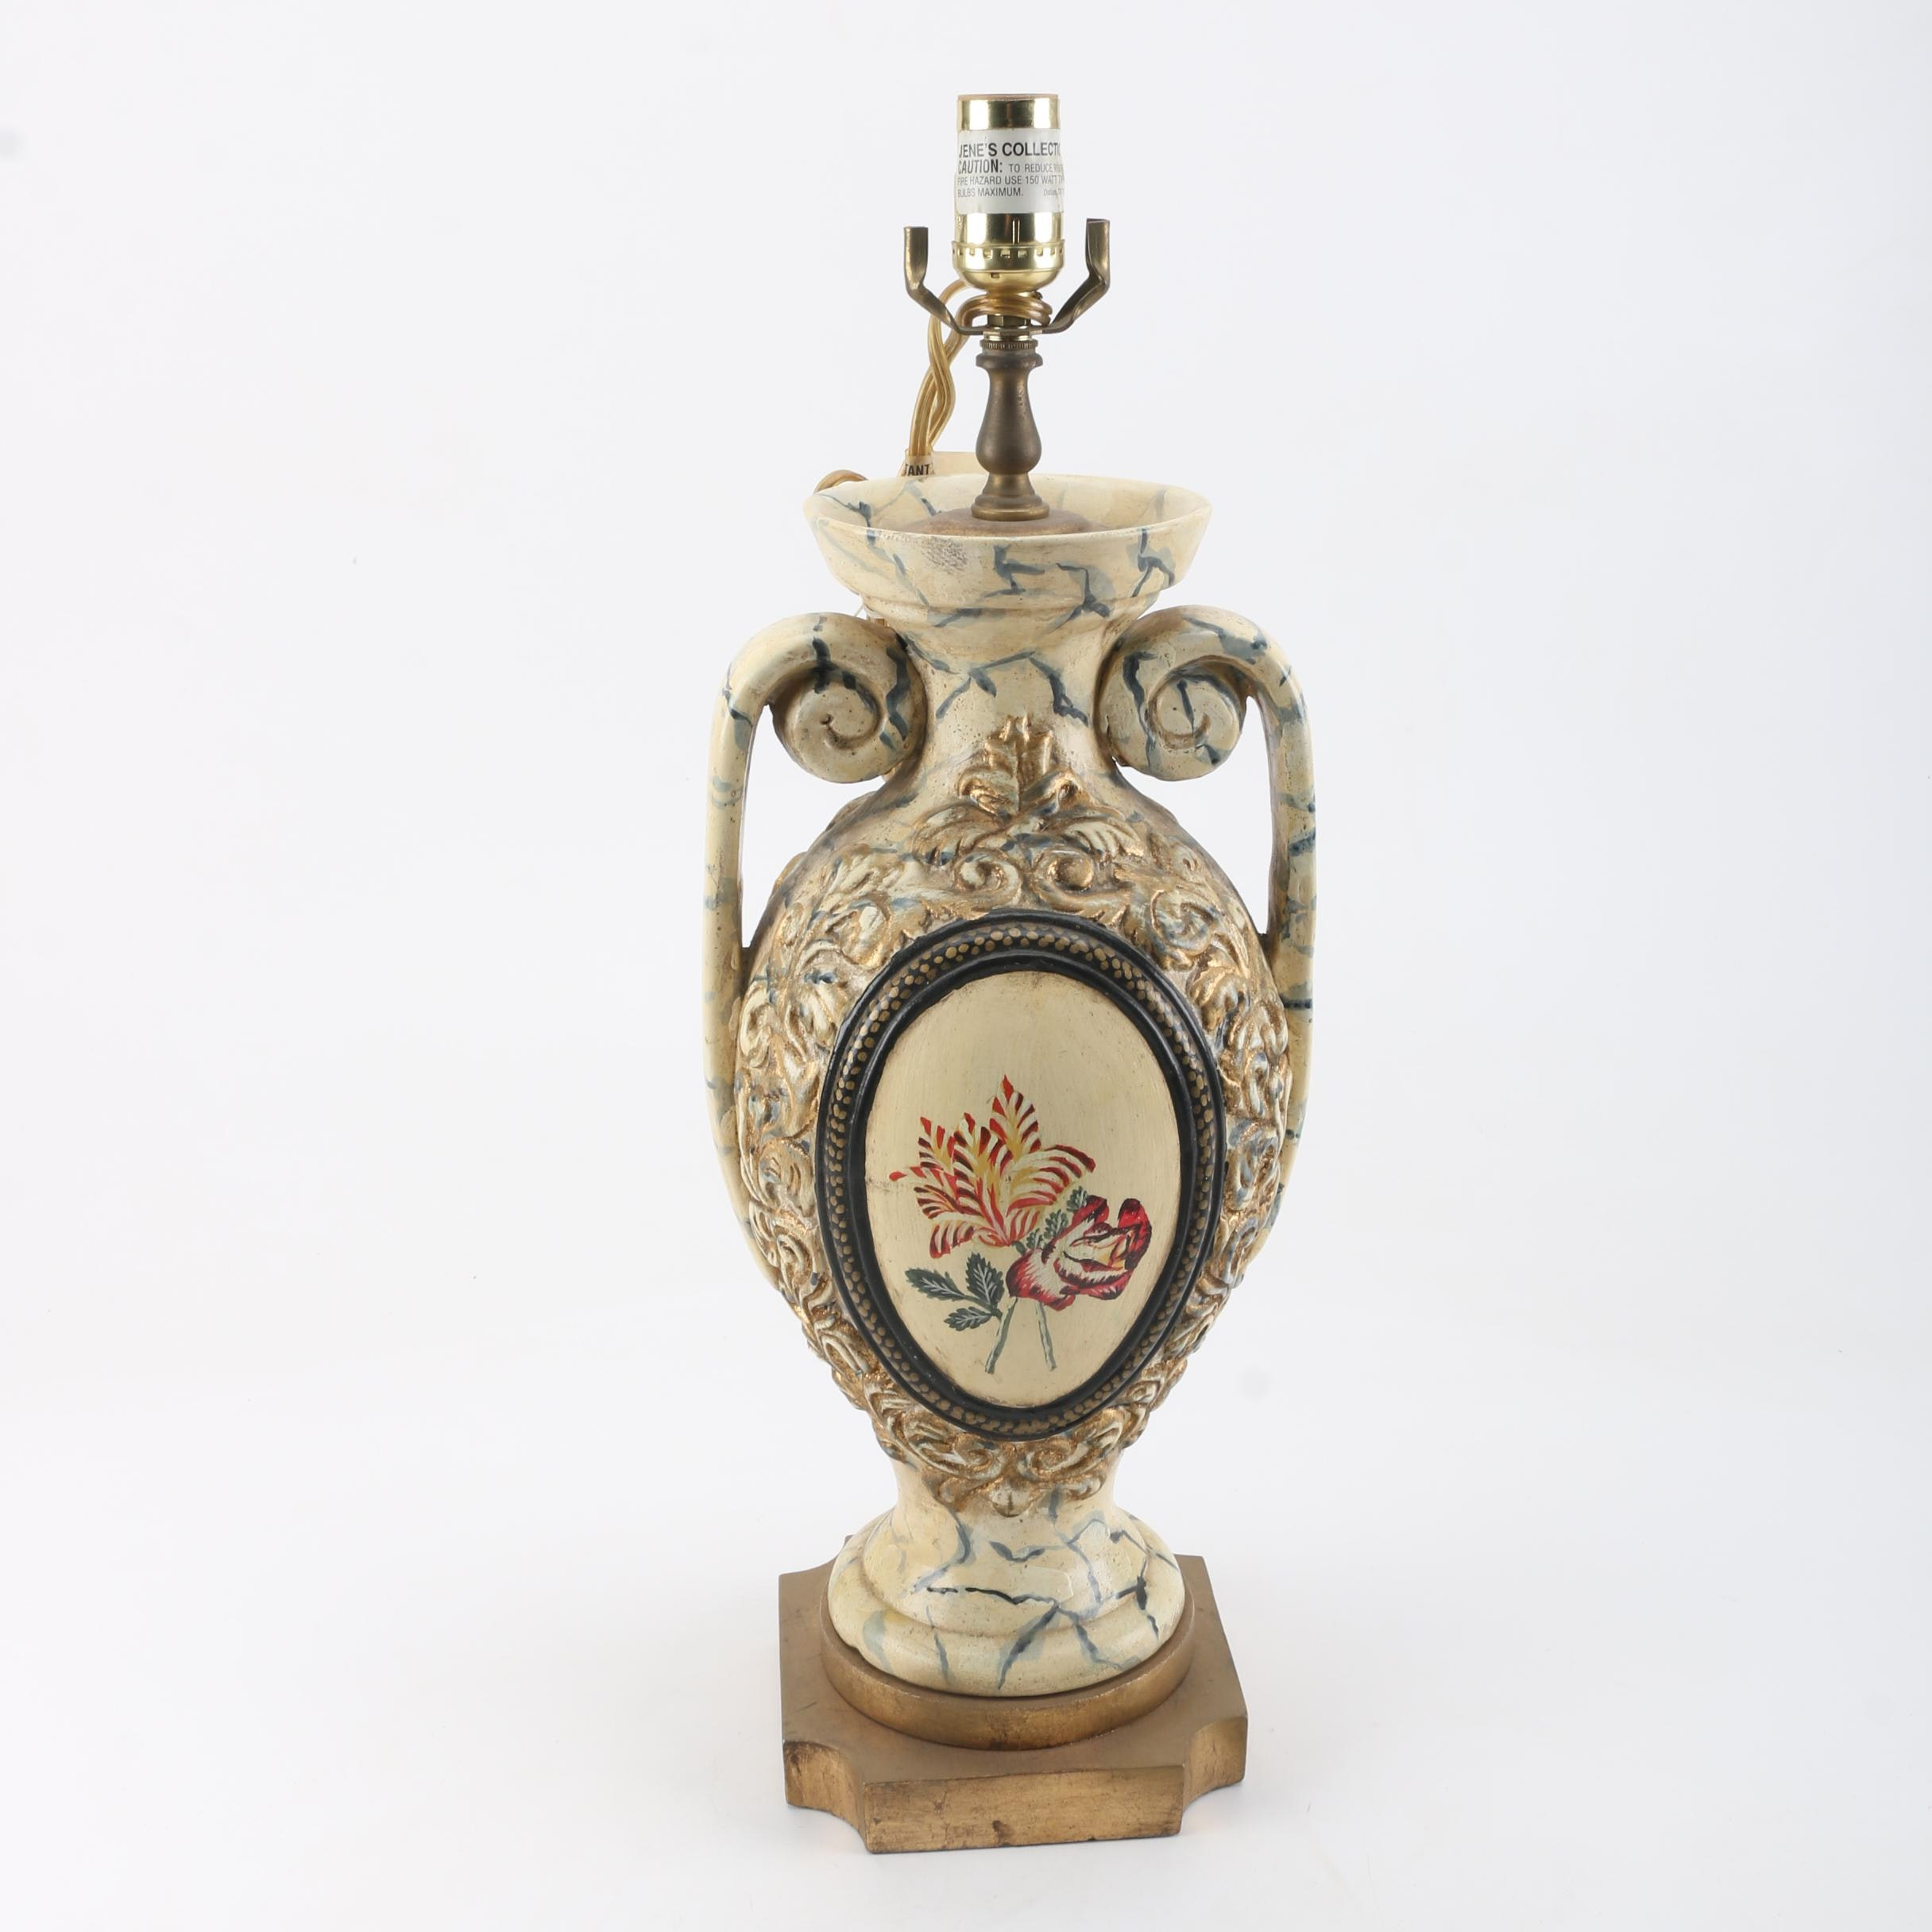 Ornate Hand-Painted Metal Urn Table Lamp by Jene's Collection